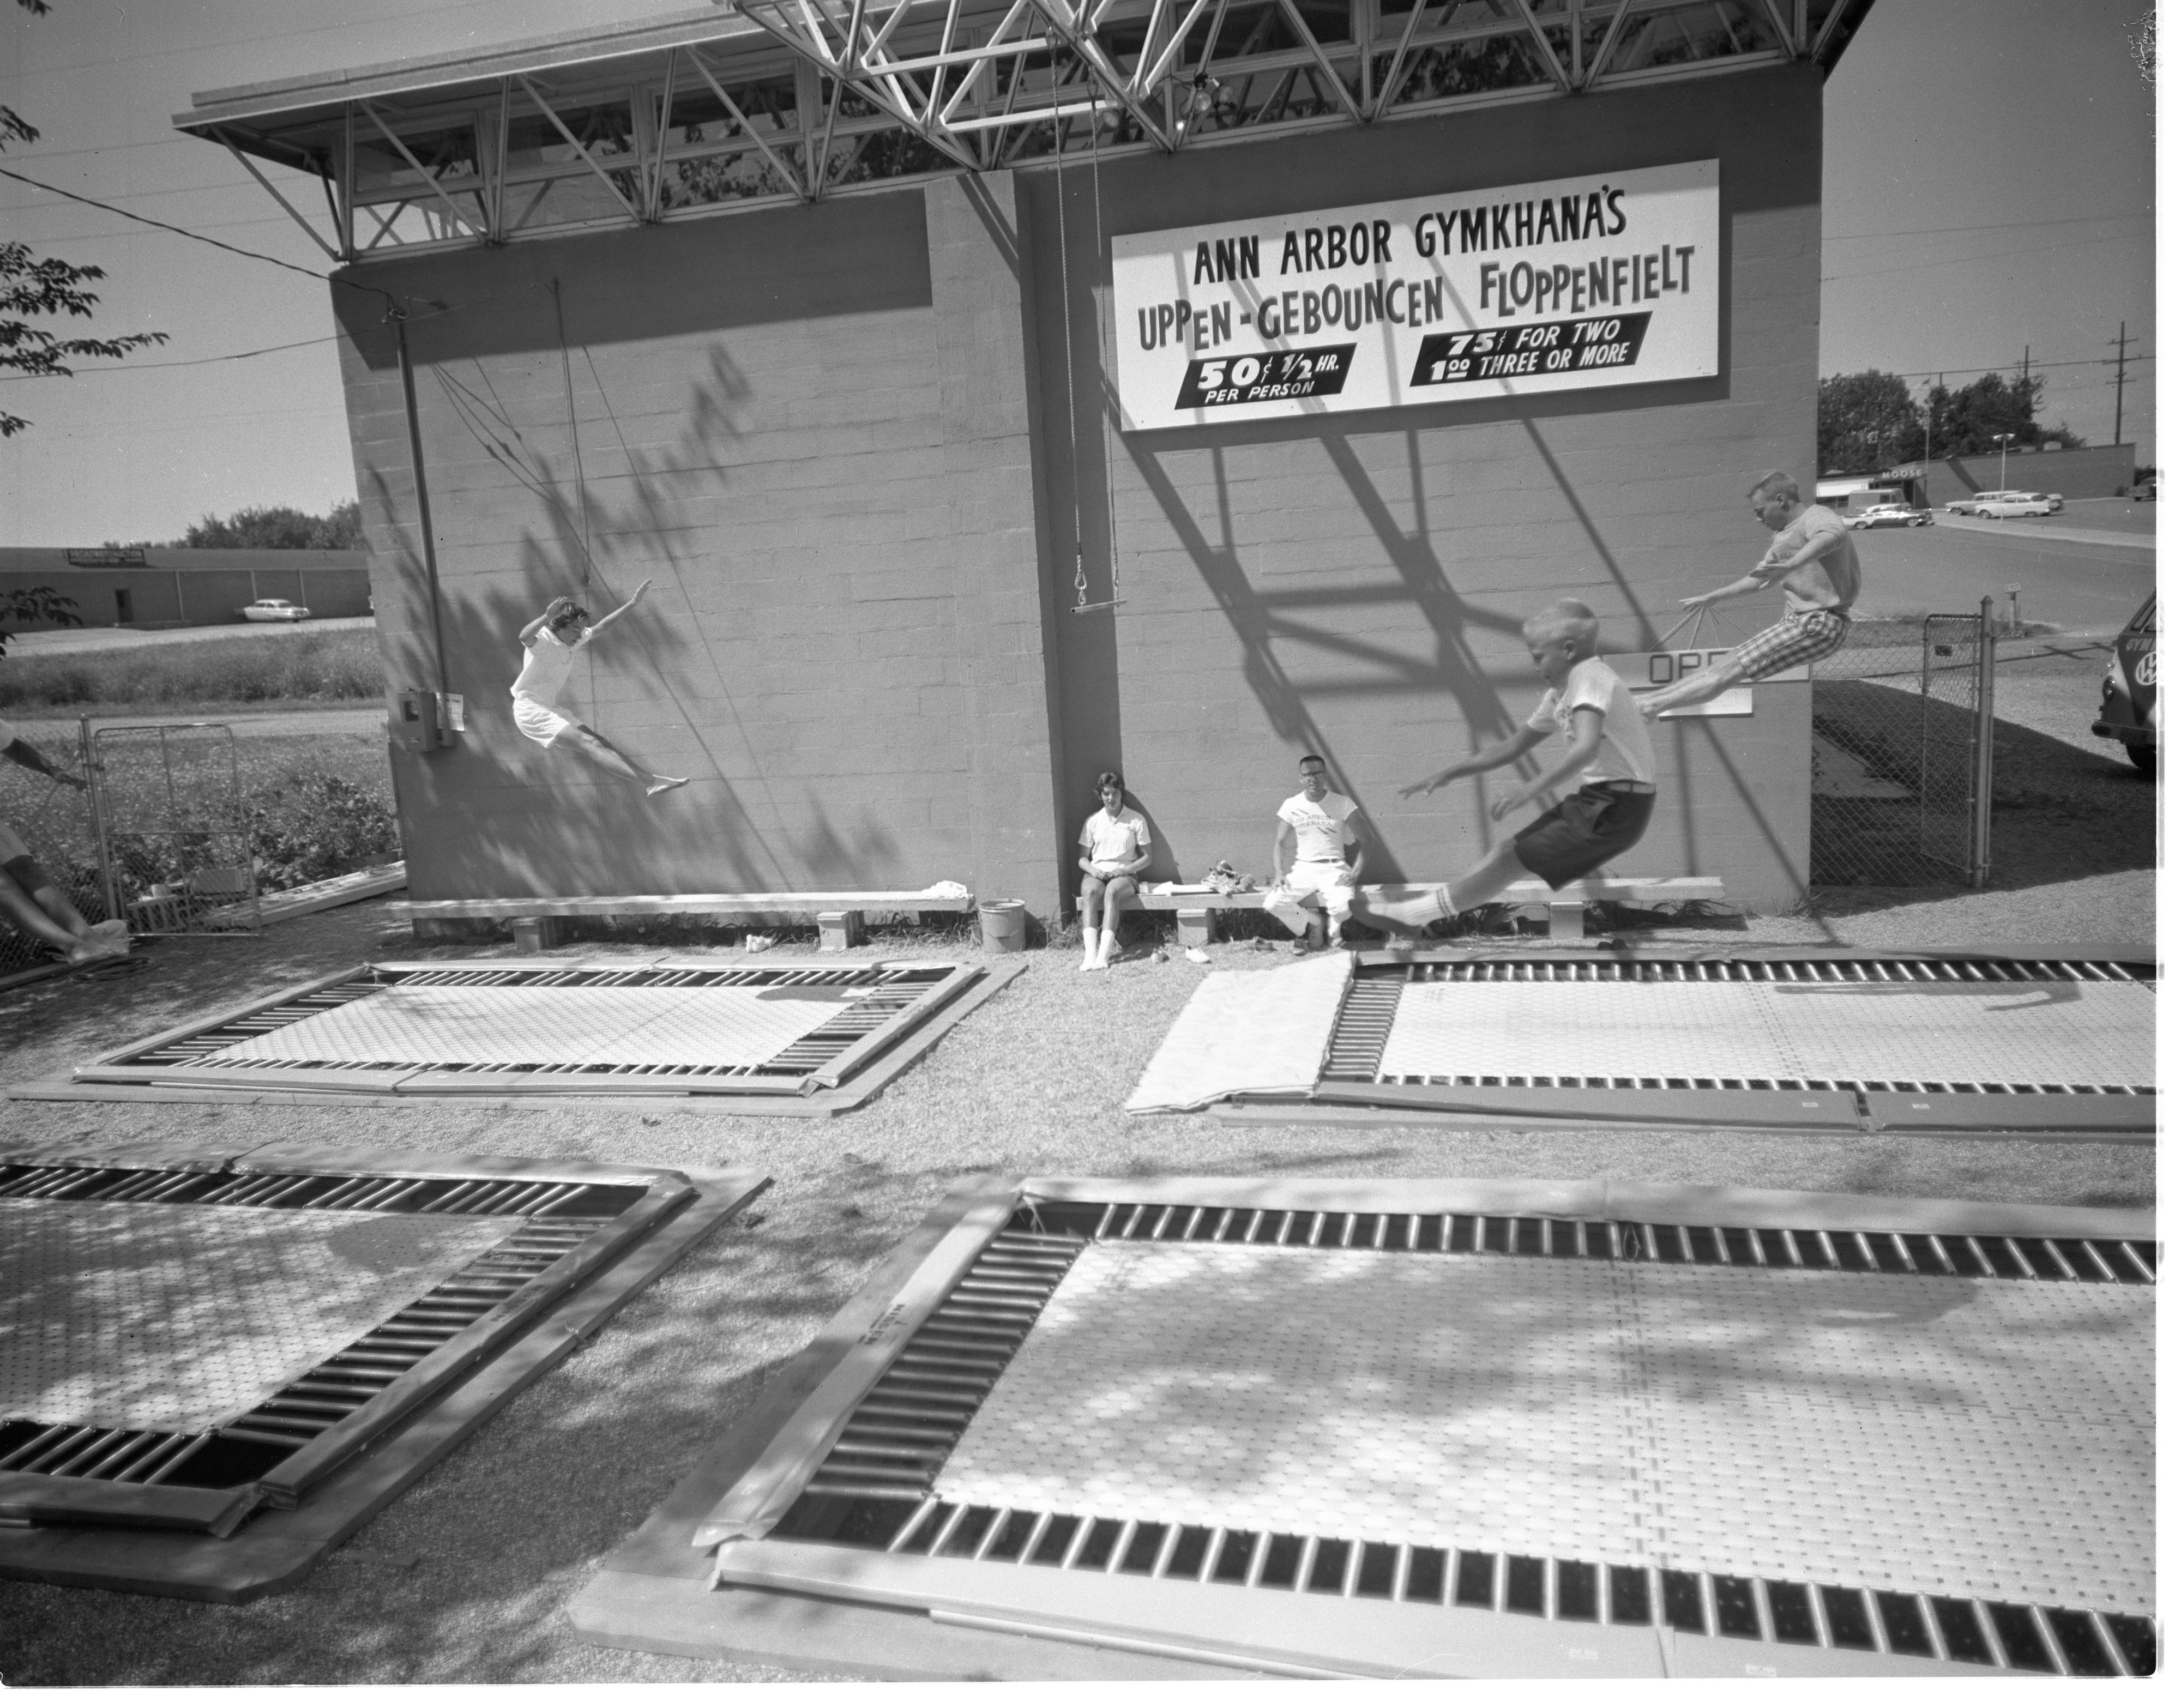 Children Use The Outdoor Trampolines At Ann Arbor Gymkhana, August 1960 image